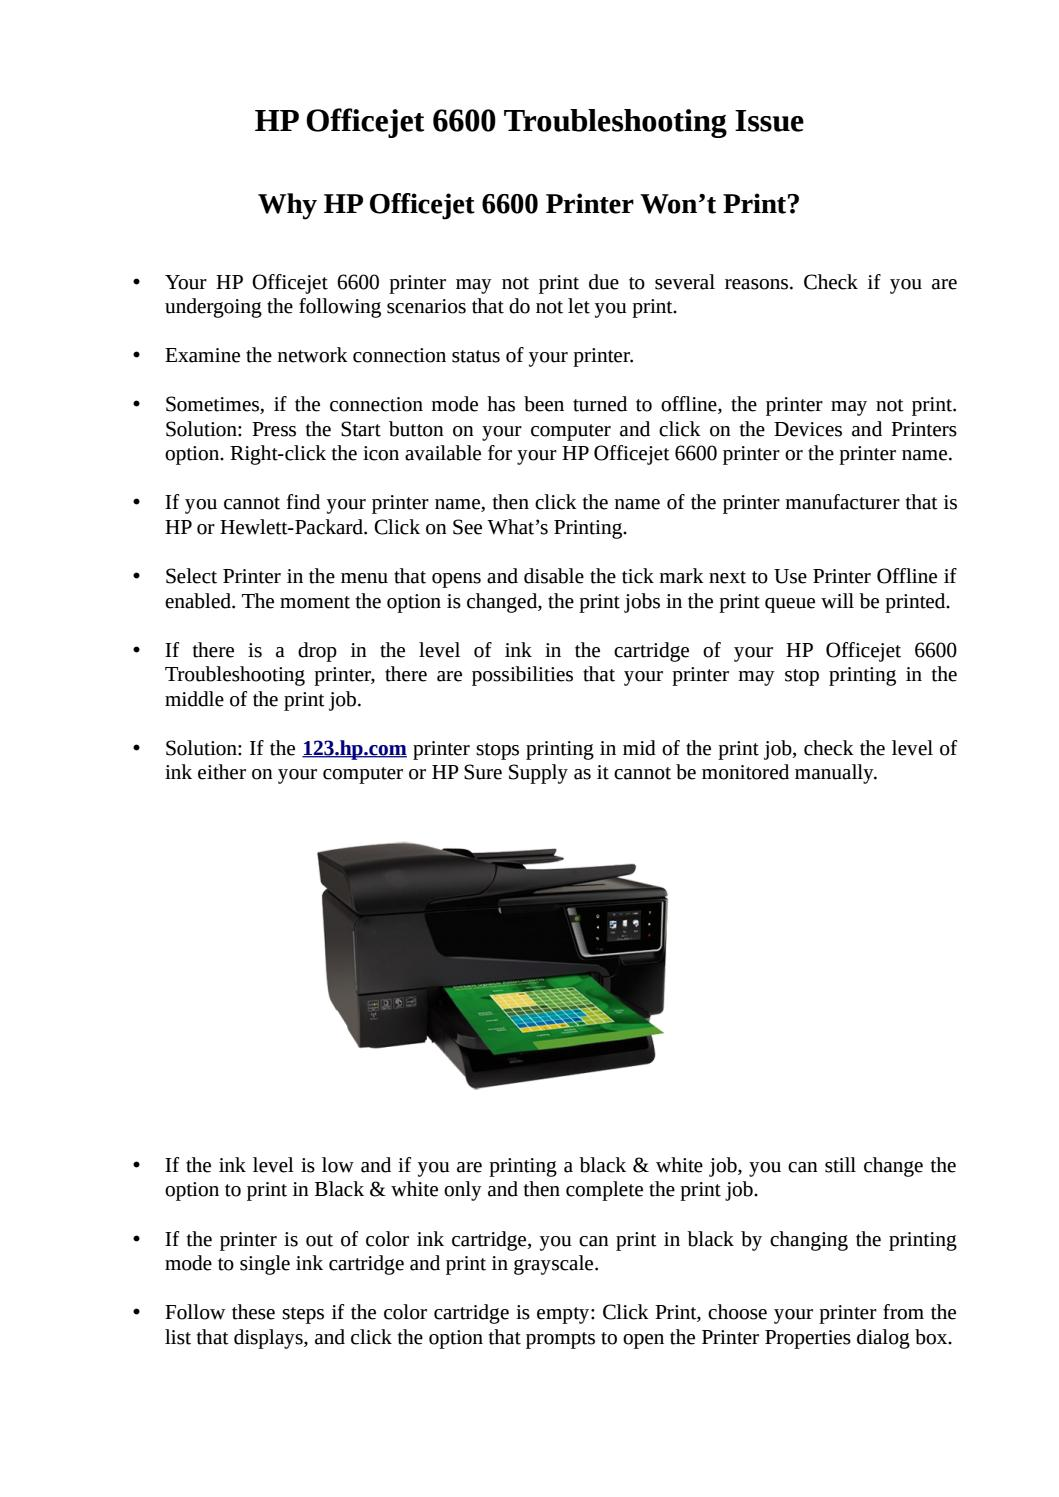 HP Officejet 6600 Printer Won't Print? by support assistsnt - issuu